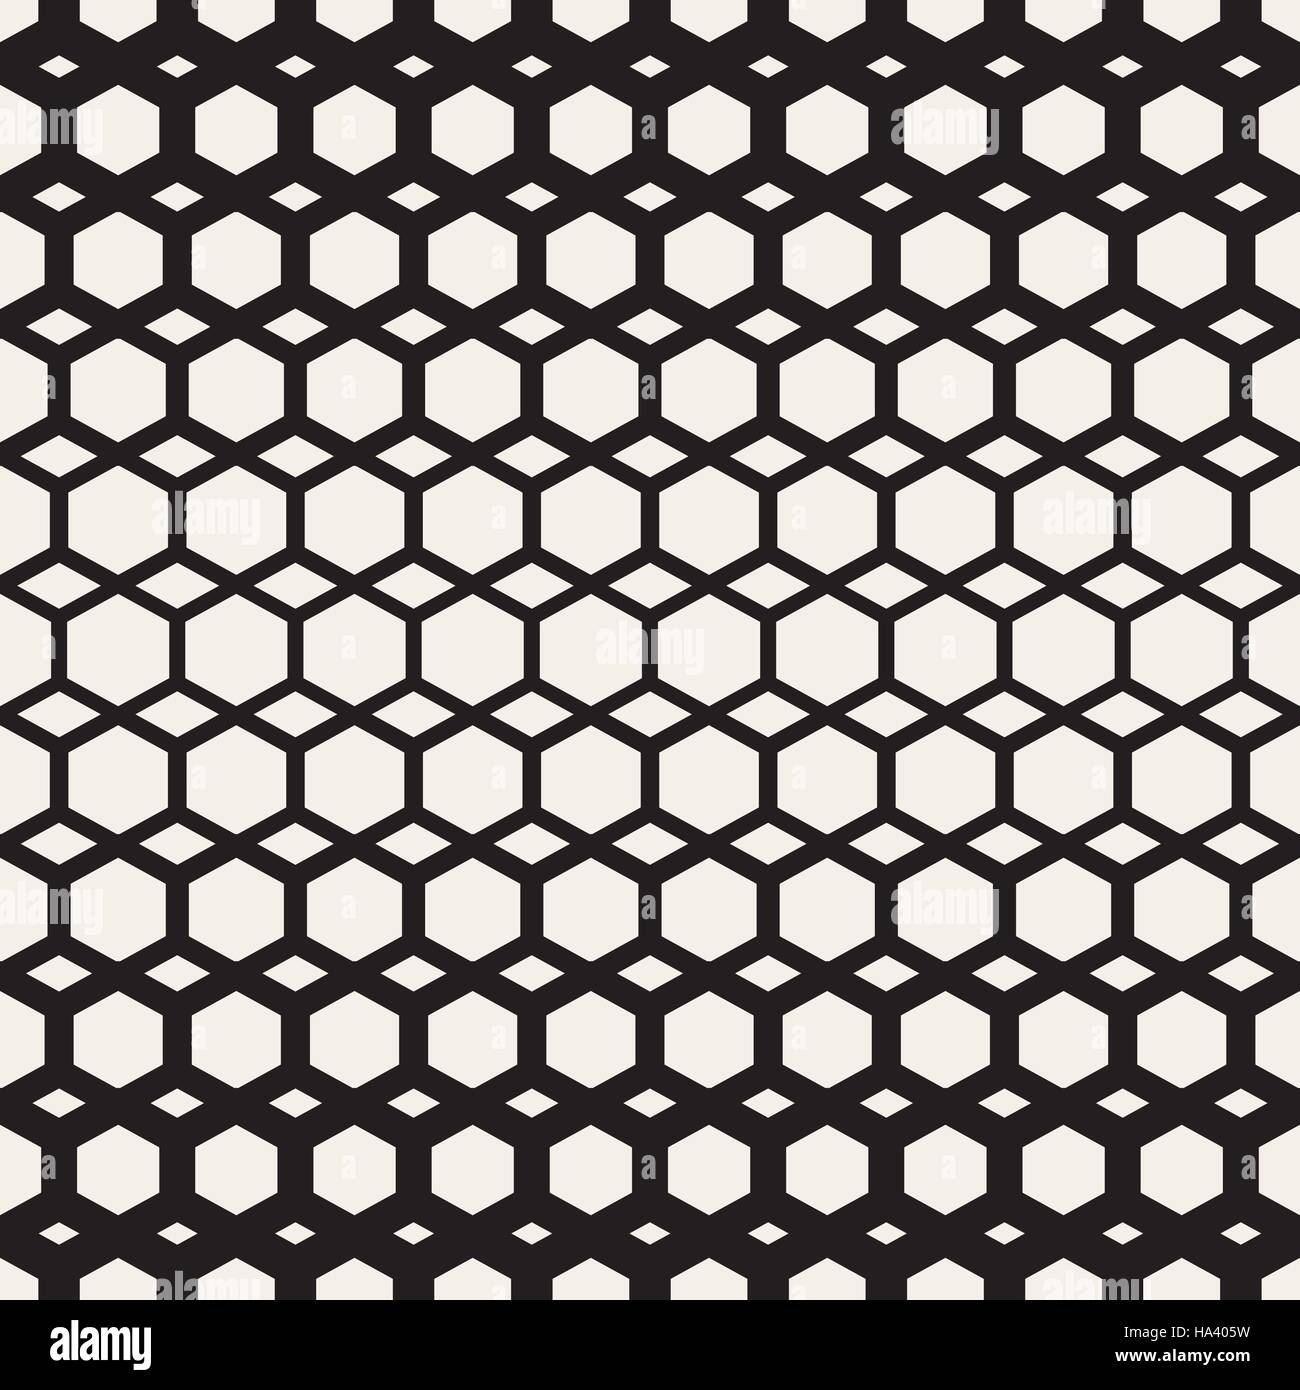 Vector Seamless Black And White Hexagon Grid Geometric Pattern - Stock Image